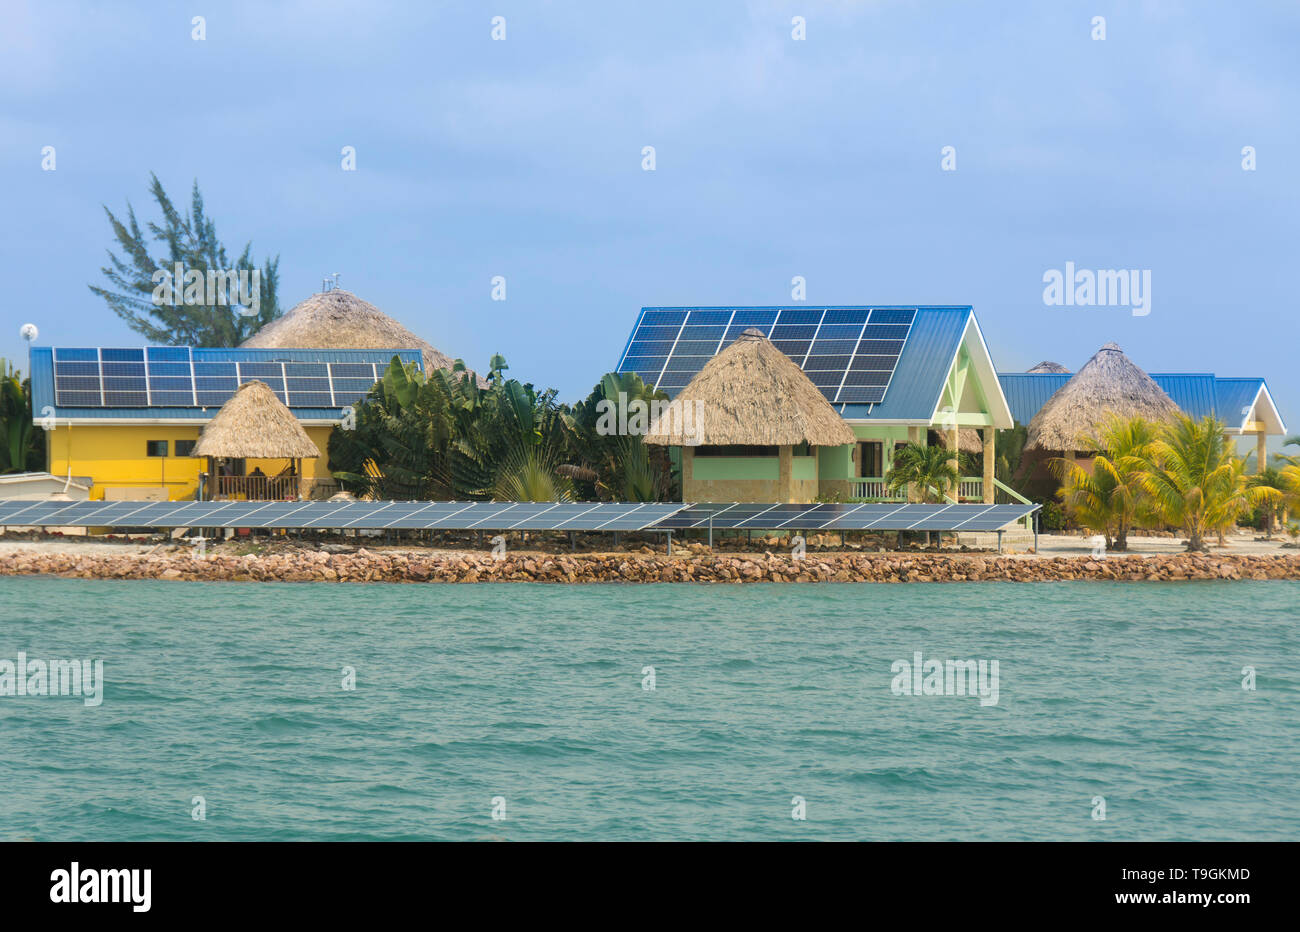 Small island residence with solar panels on rooftops. Near Placencia, Belize - Stock Image